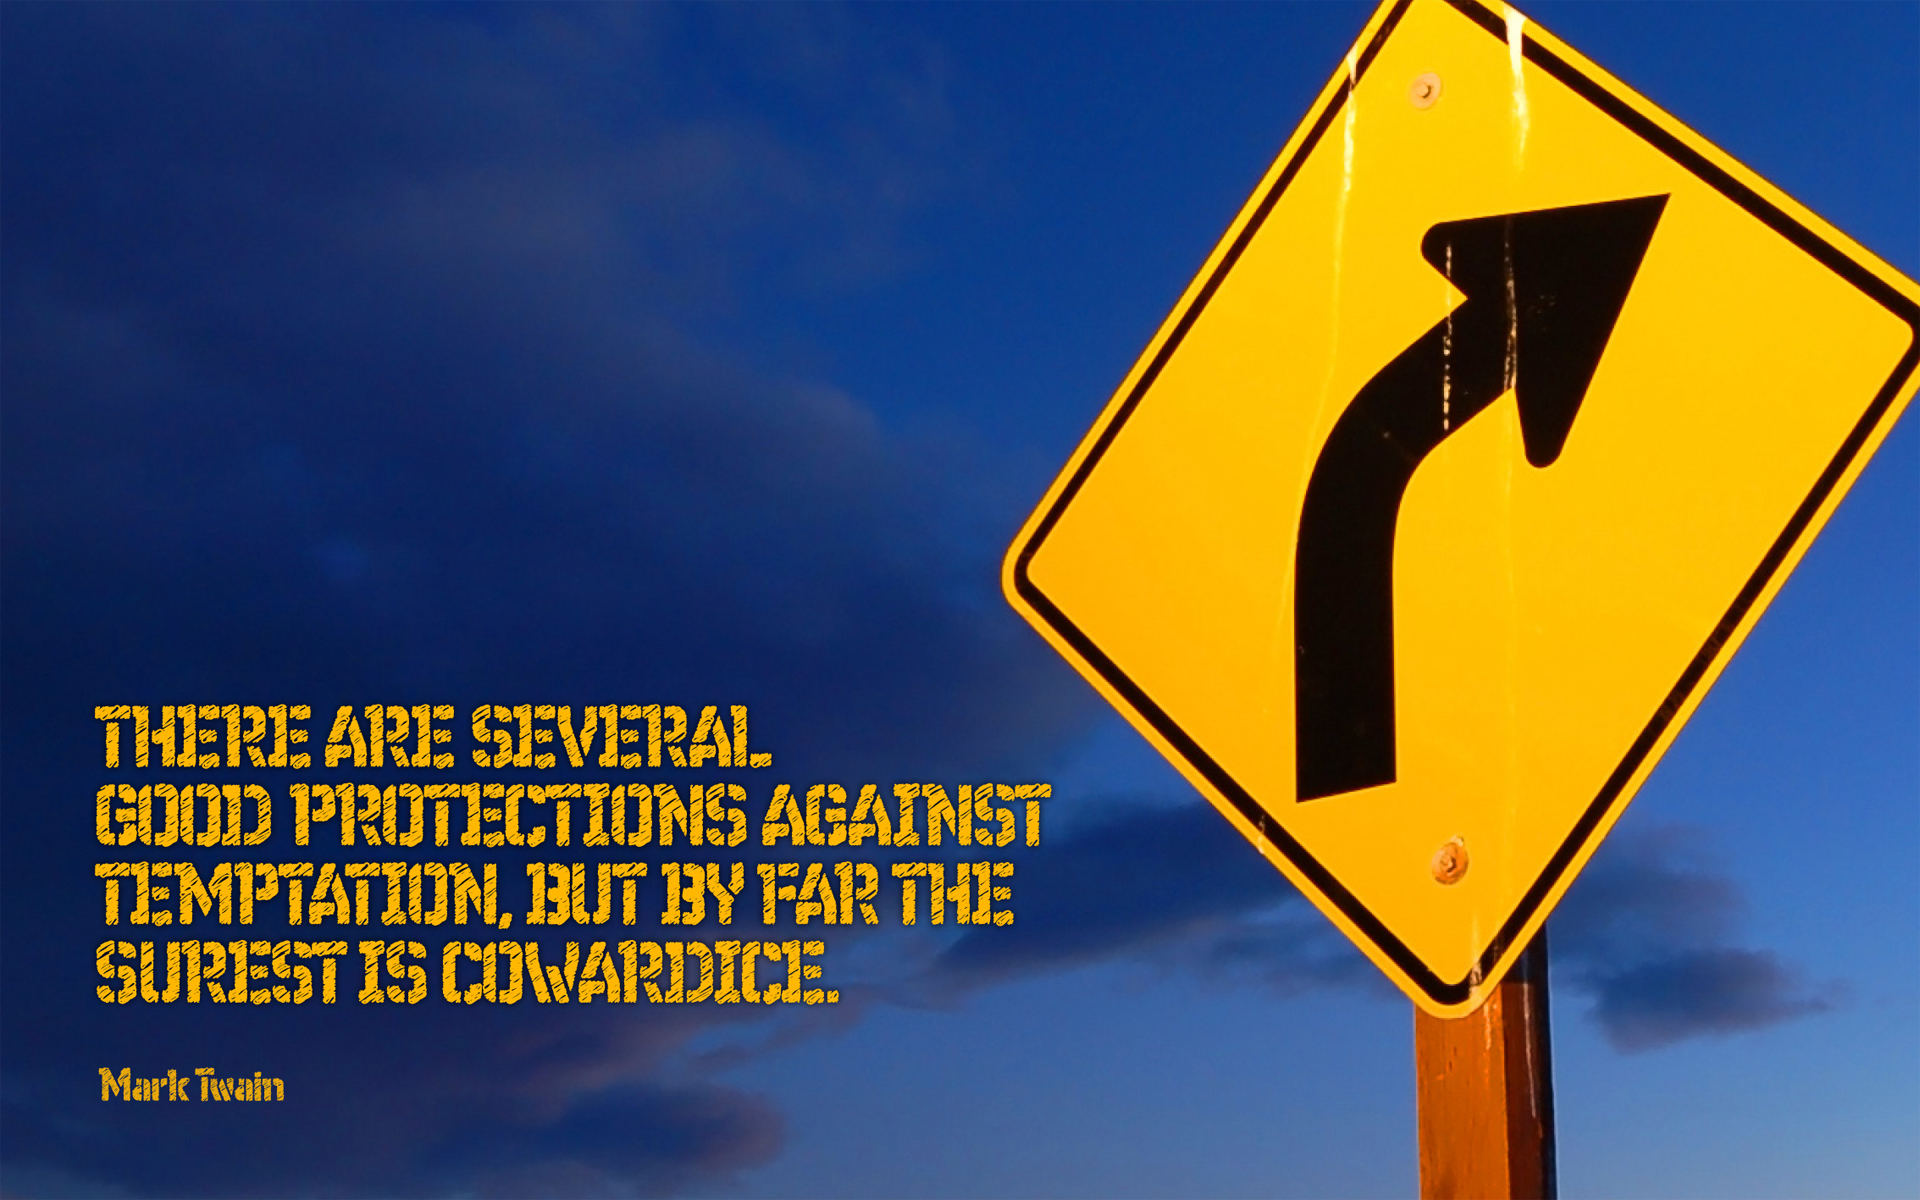 There are several good protections against temptation, but by far the surest is cowardice. — Mark Twain [1920×1200]